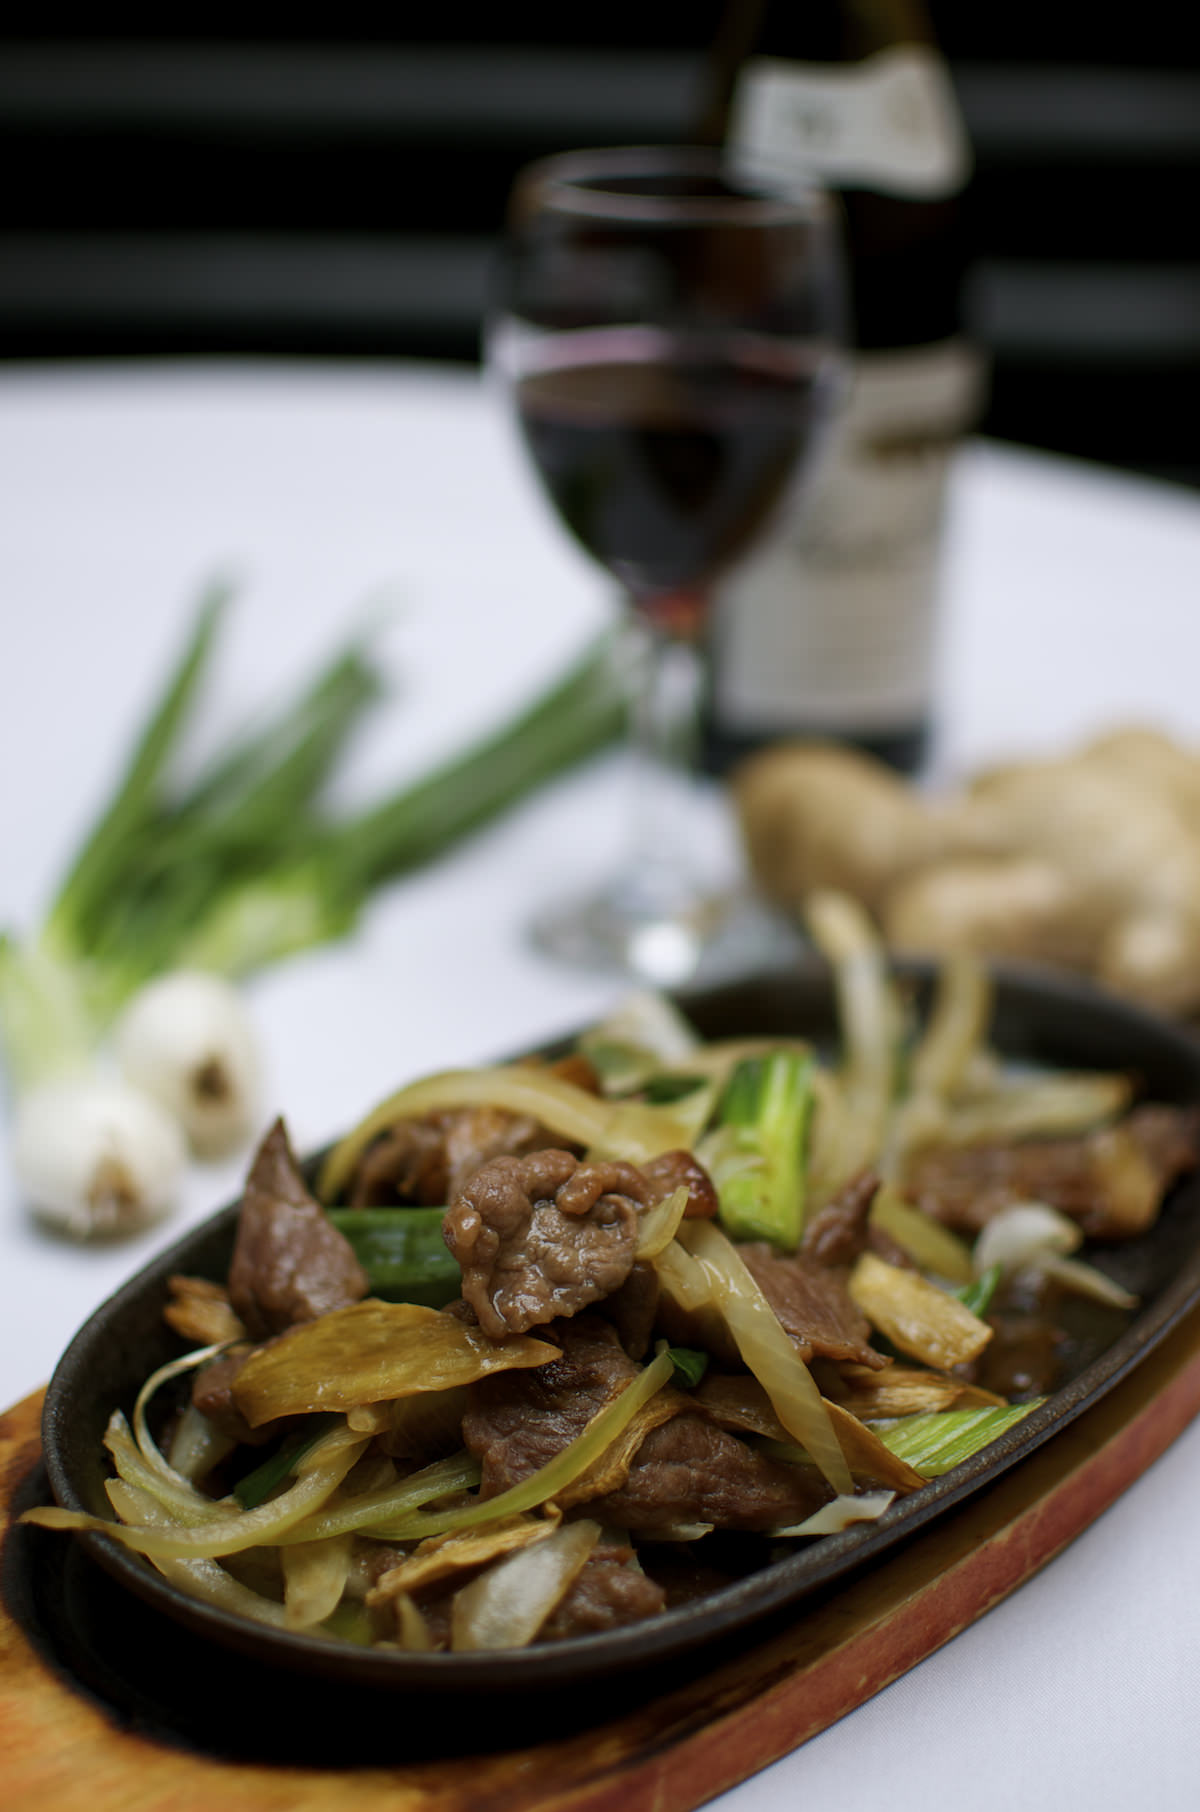 Naturally Chinese sizzling lamb with ginger and spring onions